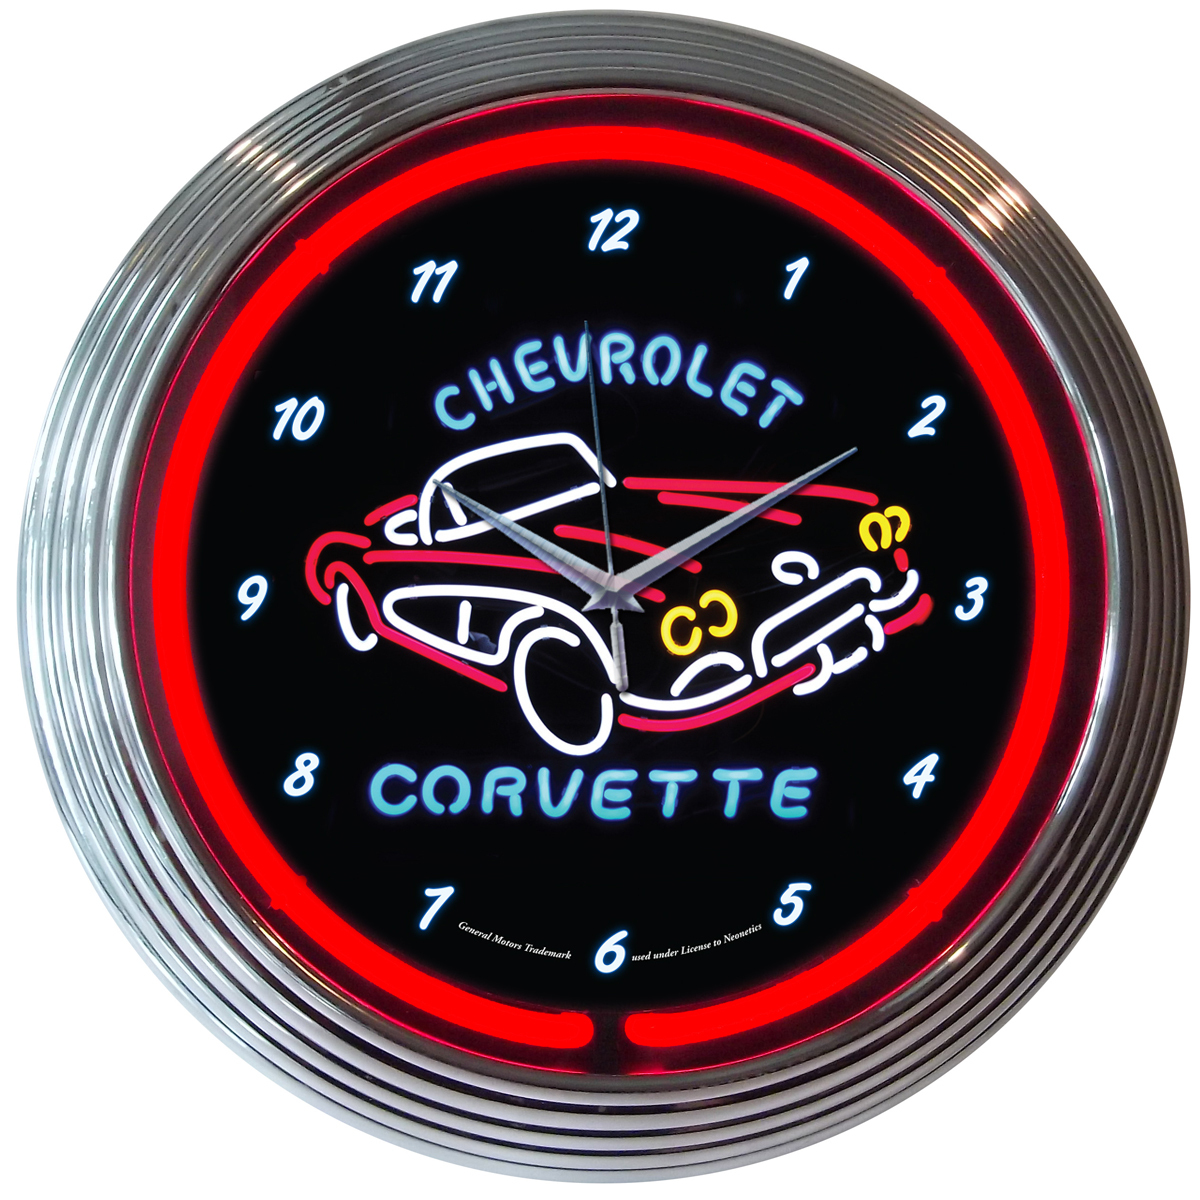 Garage Art Neon Signs Chevrolet Corvette 15 Quot Neon Light Wall Clock Sign Hot Rod